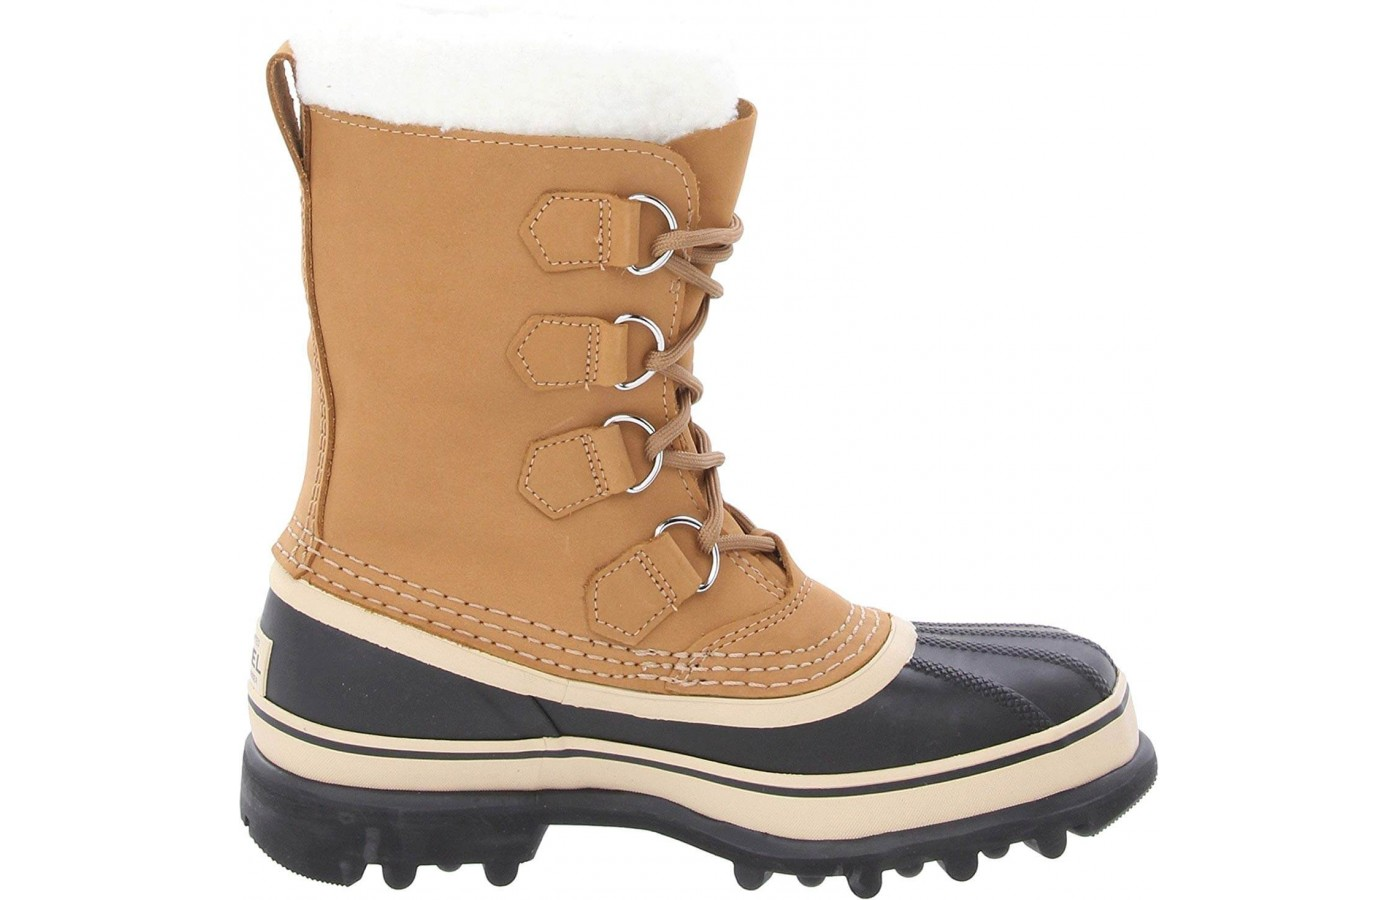 Beyond the waterproof bootie and lower portion of the boot is the upper, which comes in a variety of colors for men and women.